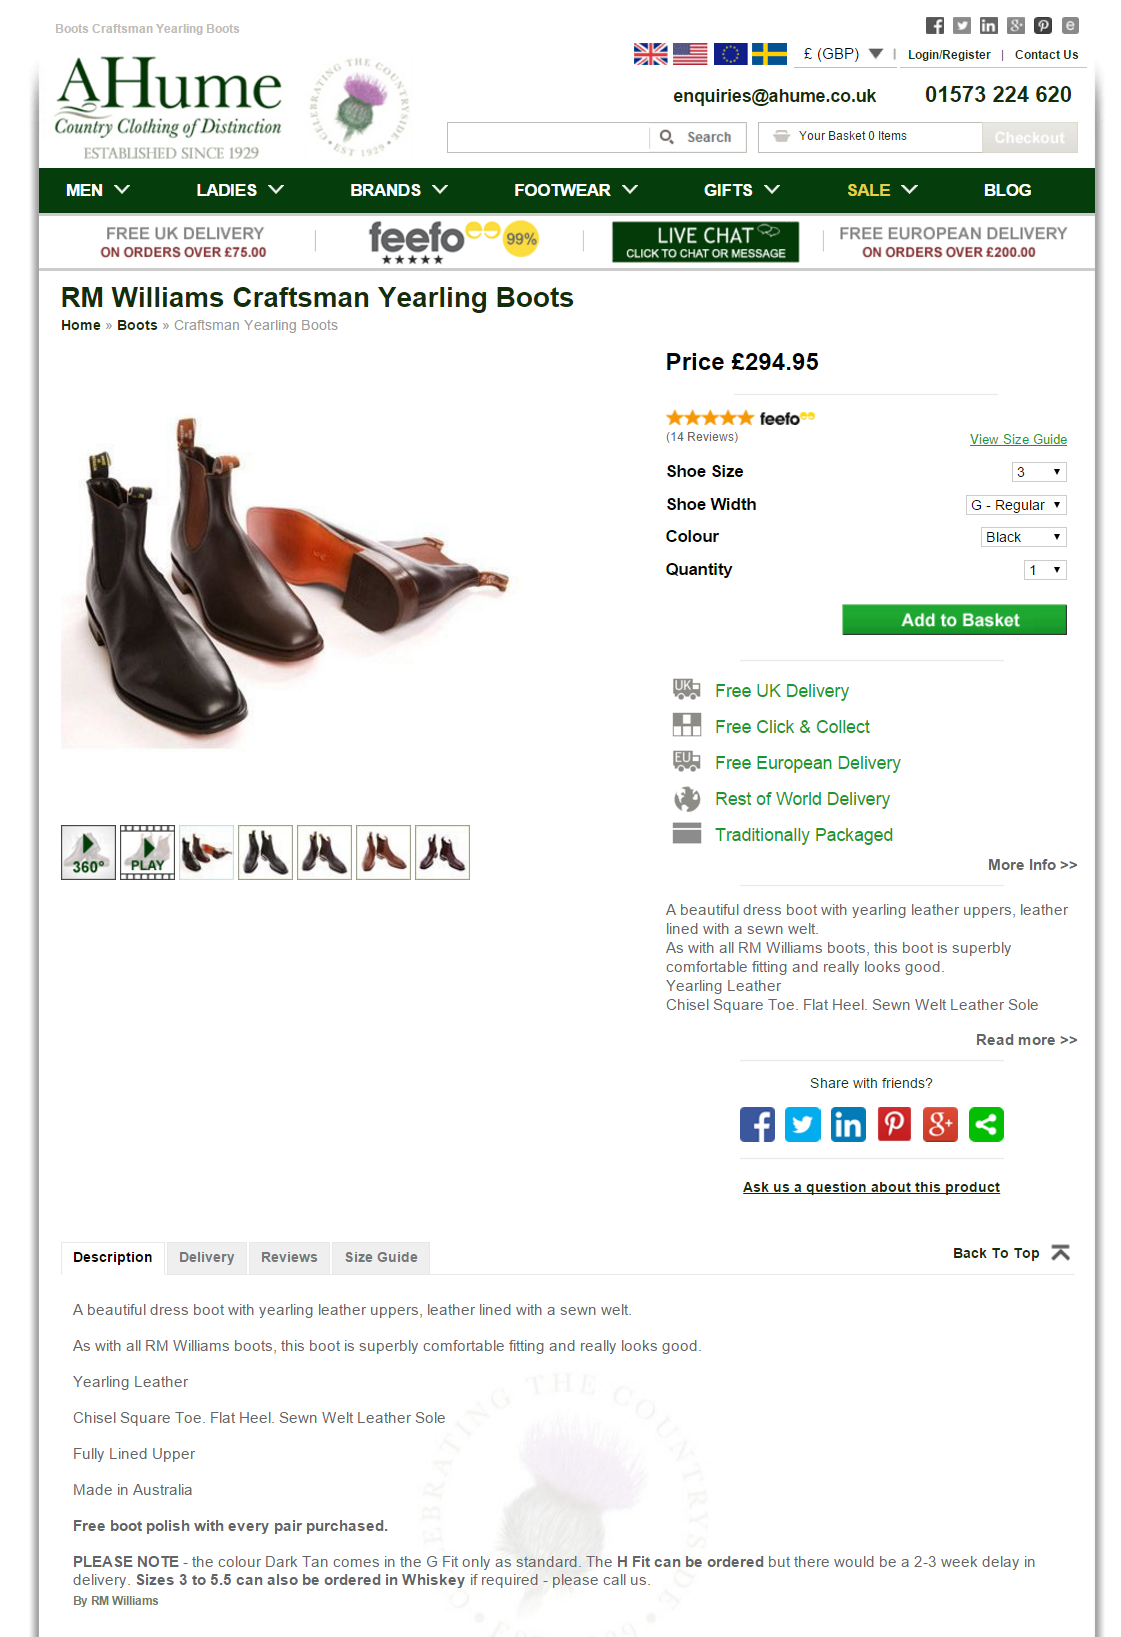 a/b testing on a hume product pages